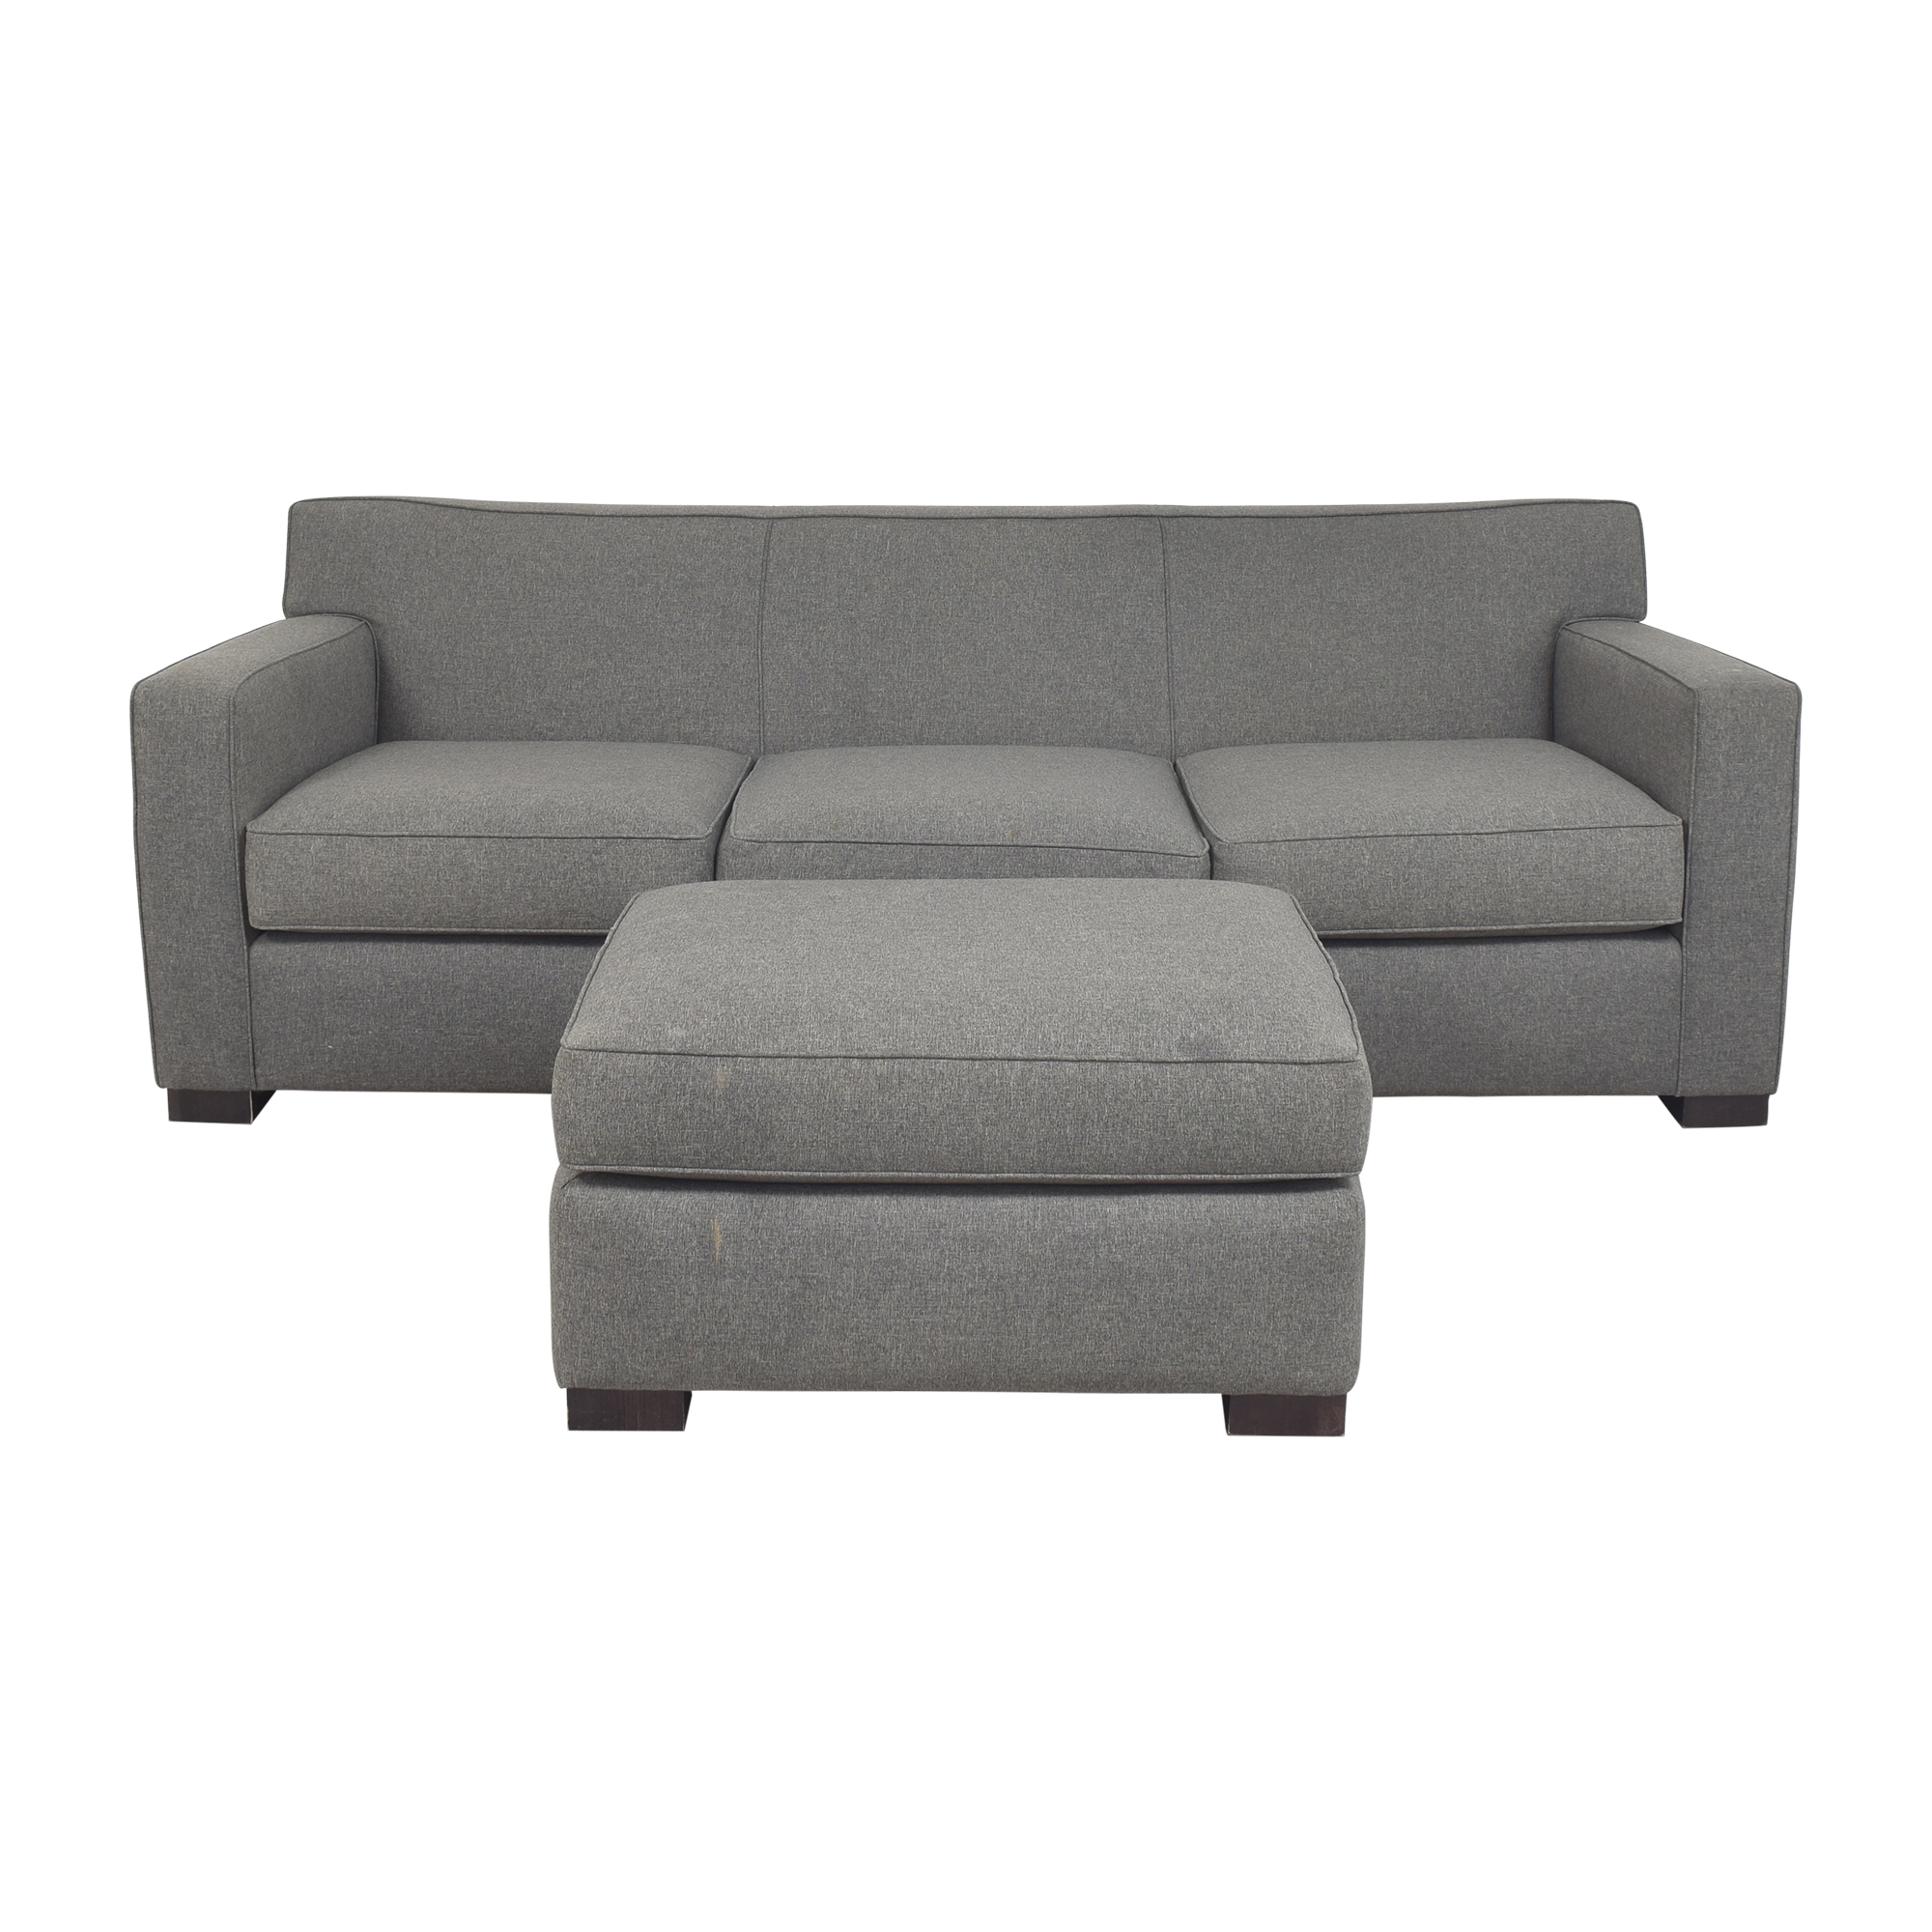 Room & Board Room & Board Dean Sofa with Ottoman Classic Sofas